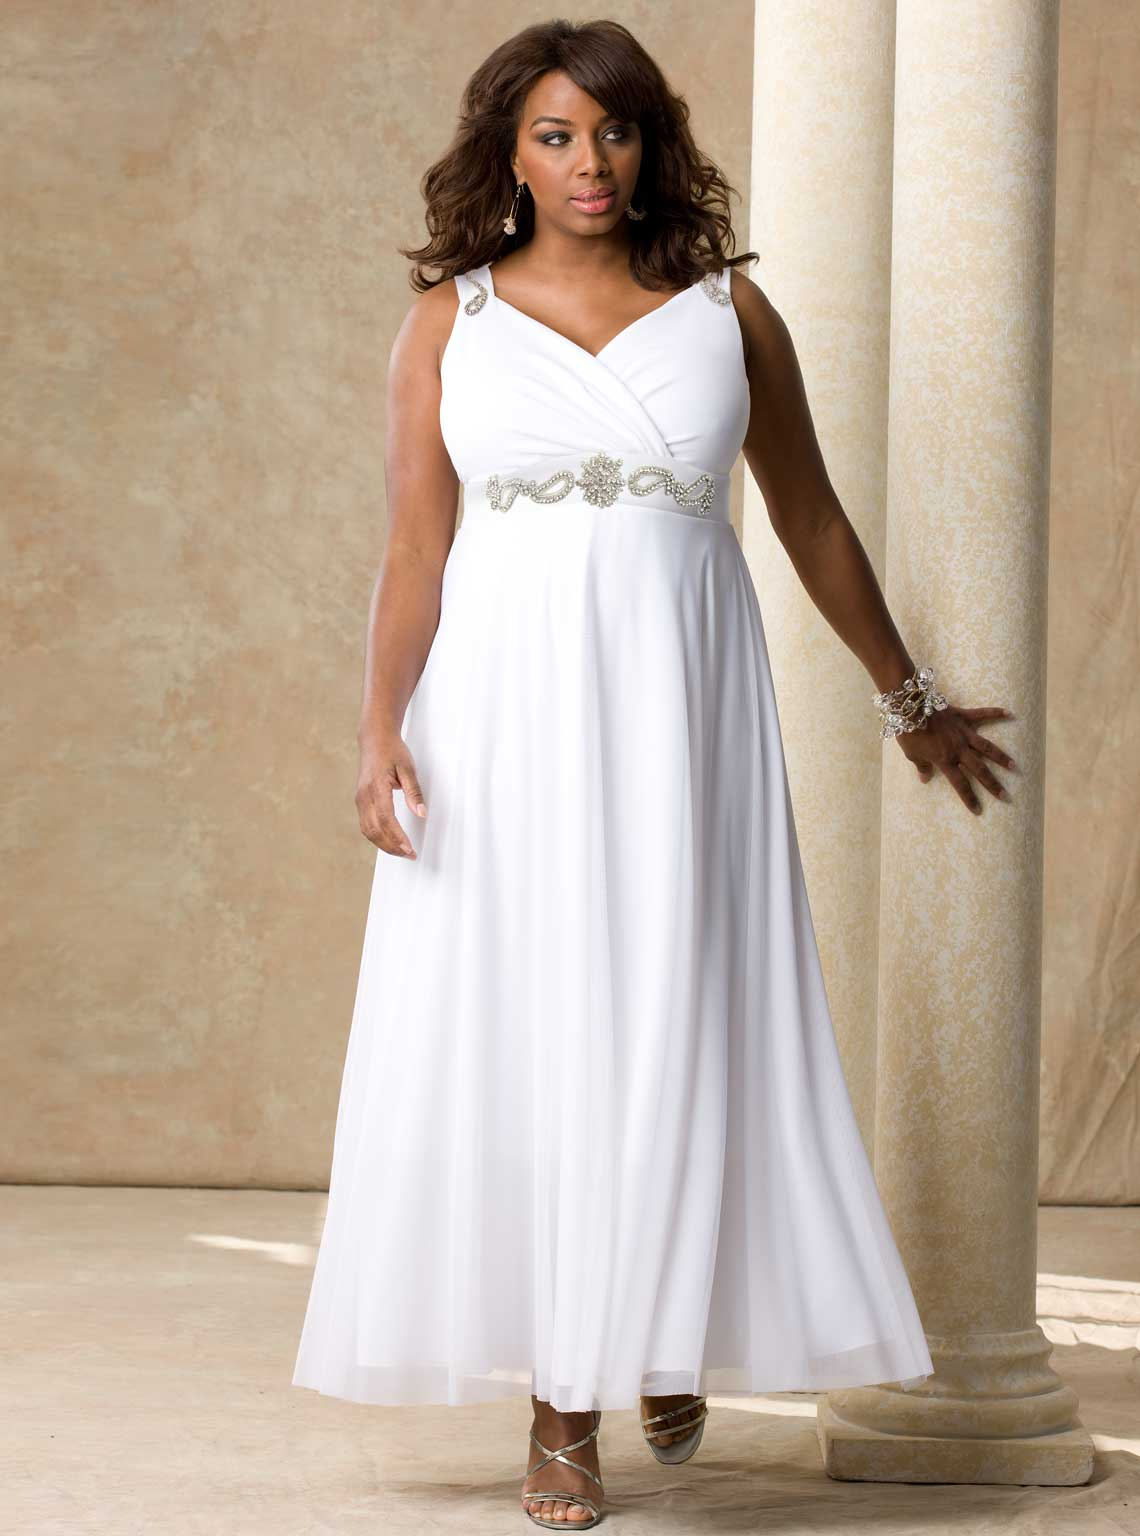 Evening dress 10 11 for Best wedding dress styles for plus size brides